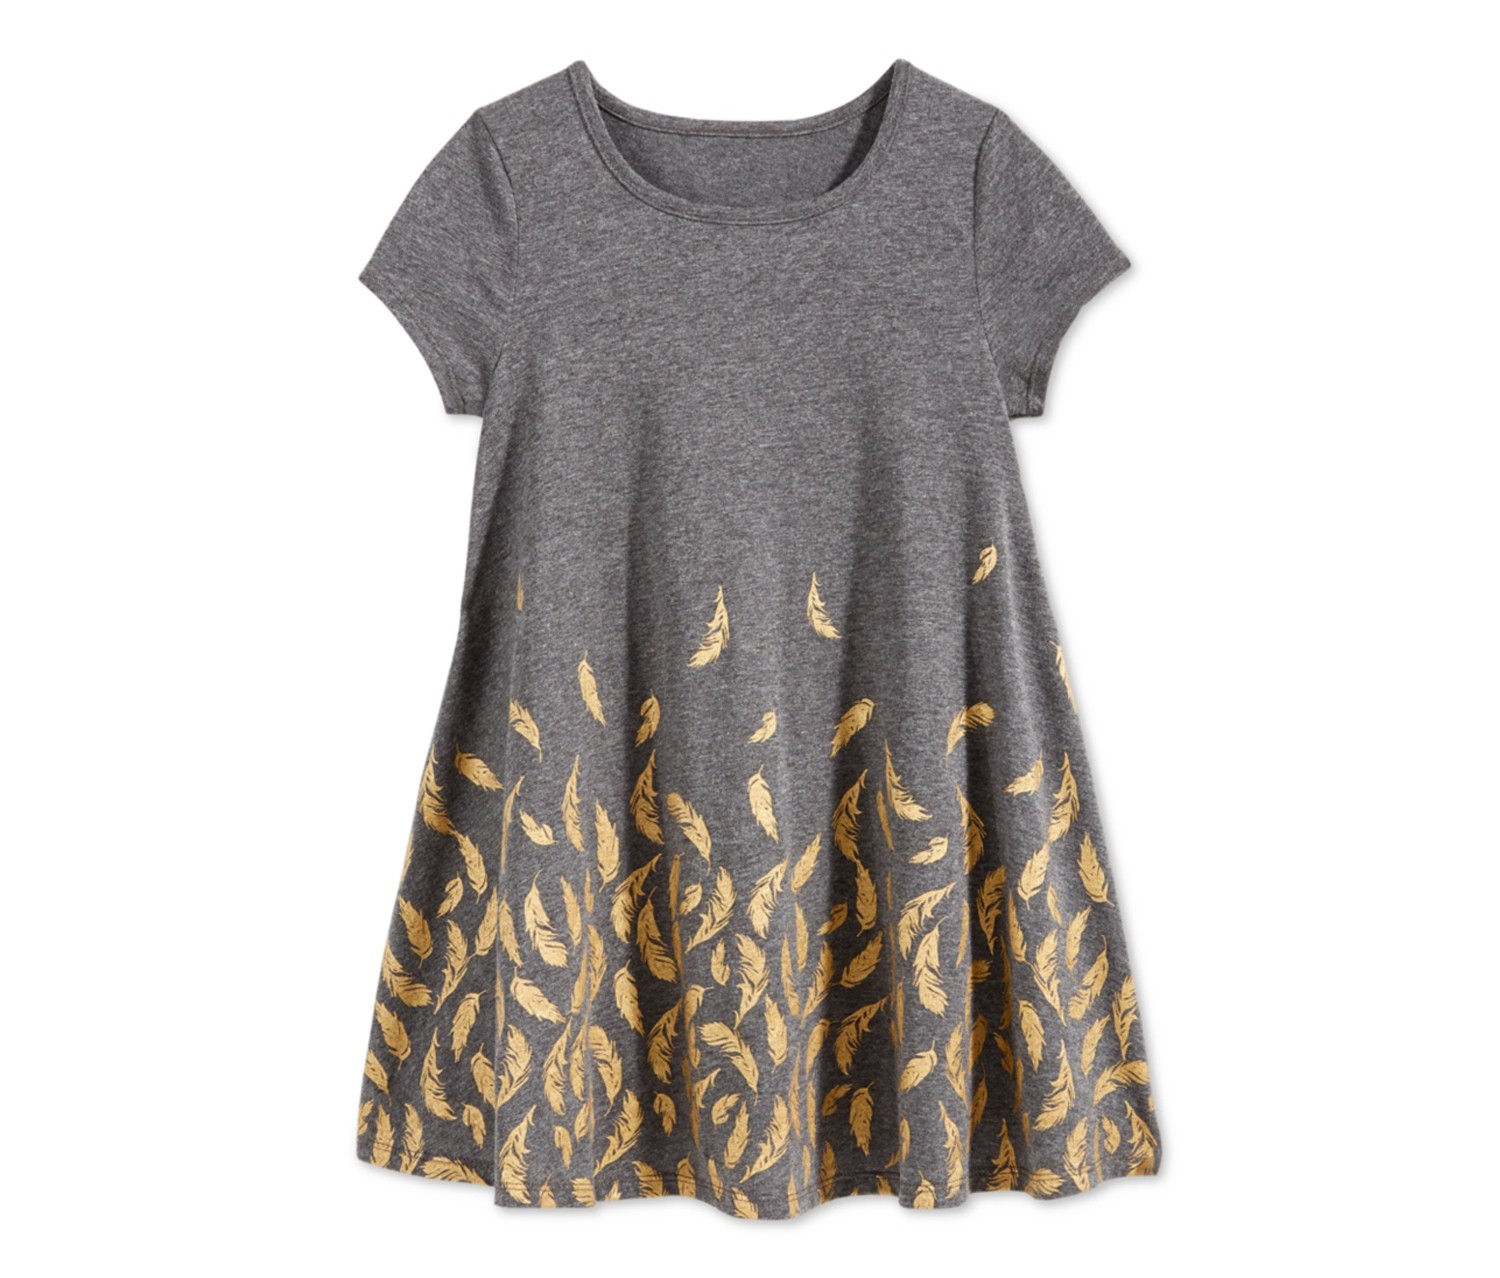 a3585f29ccf39 Shop Epic Threads Epic Threads Little Girls Feather-Print Skater ...